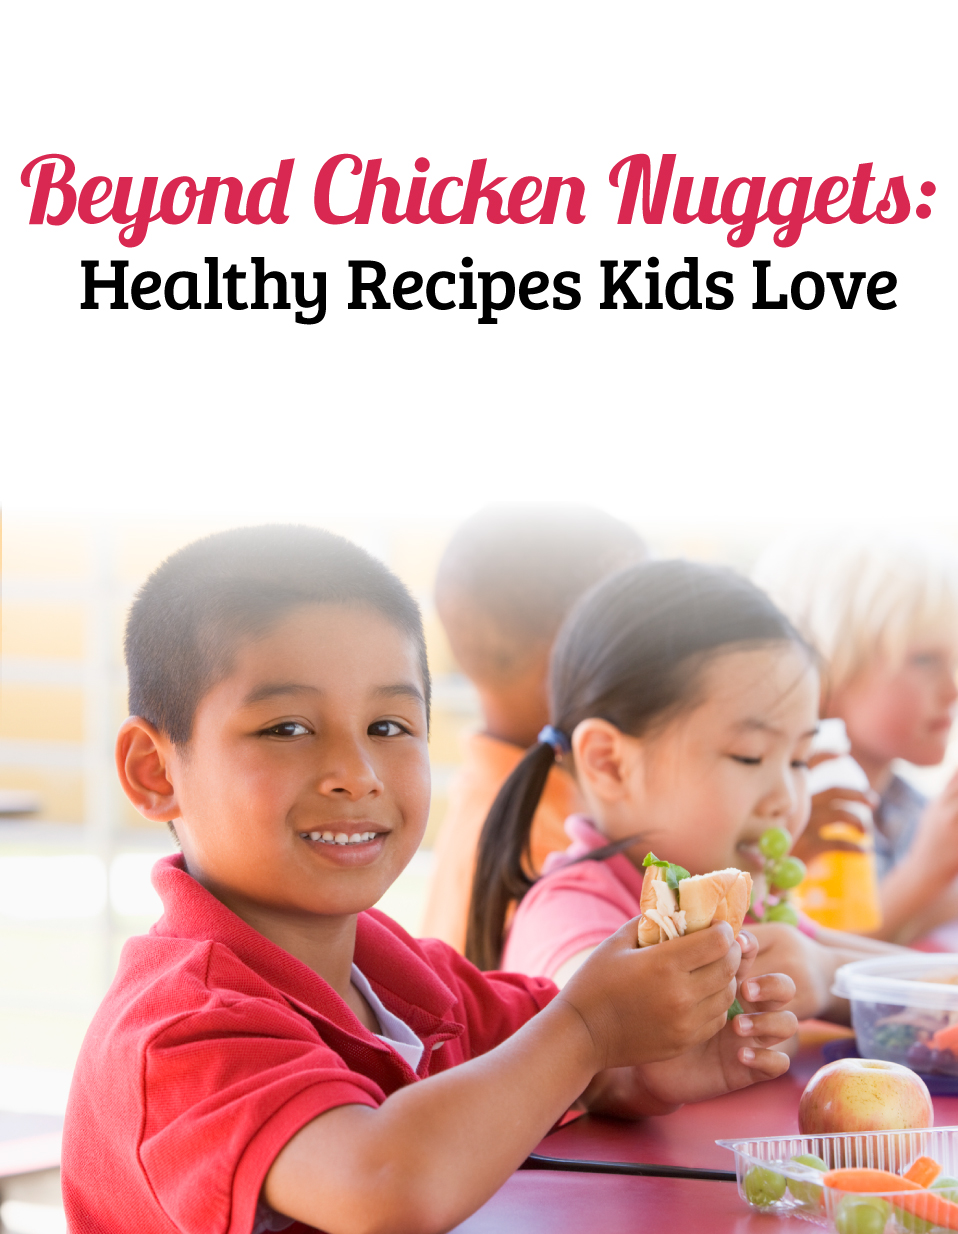 Healthy Recipes Kids Love